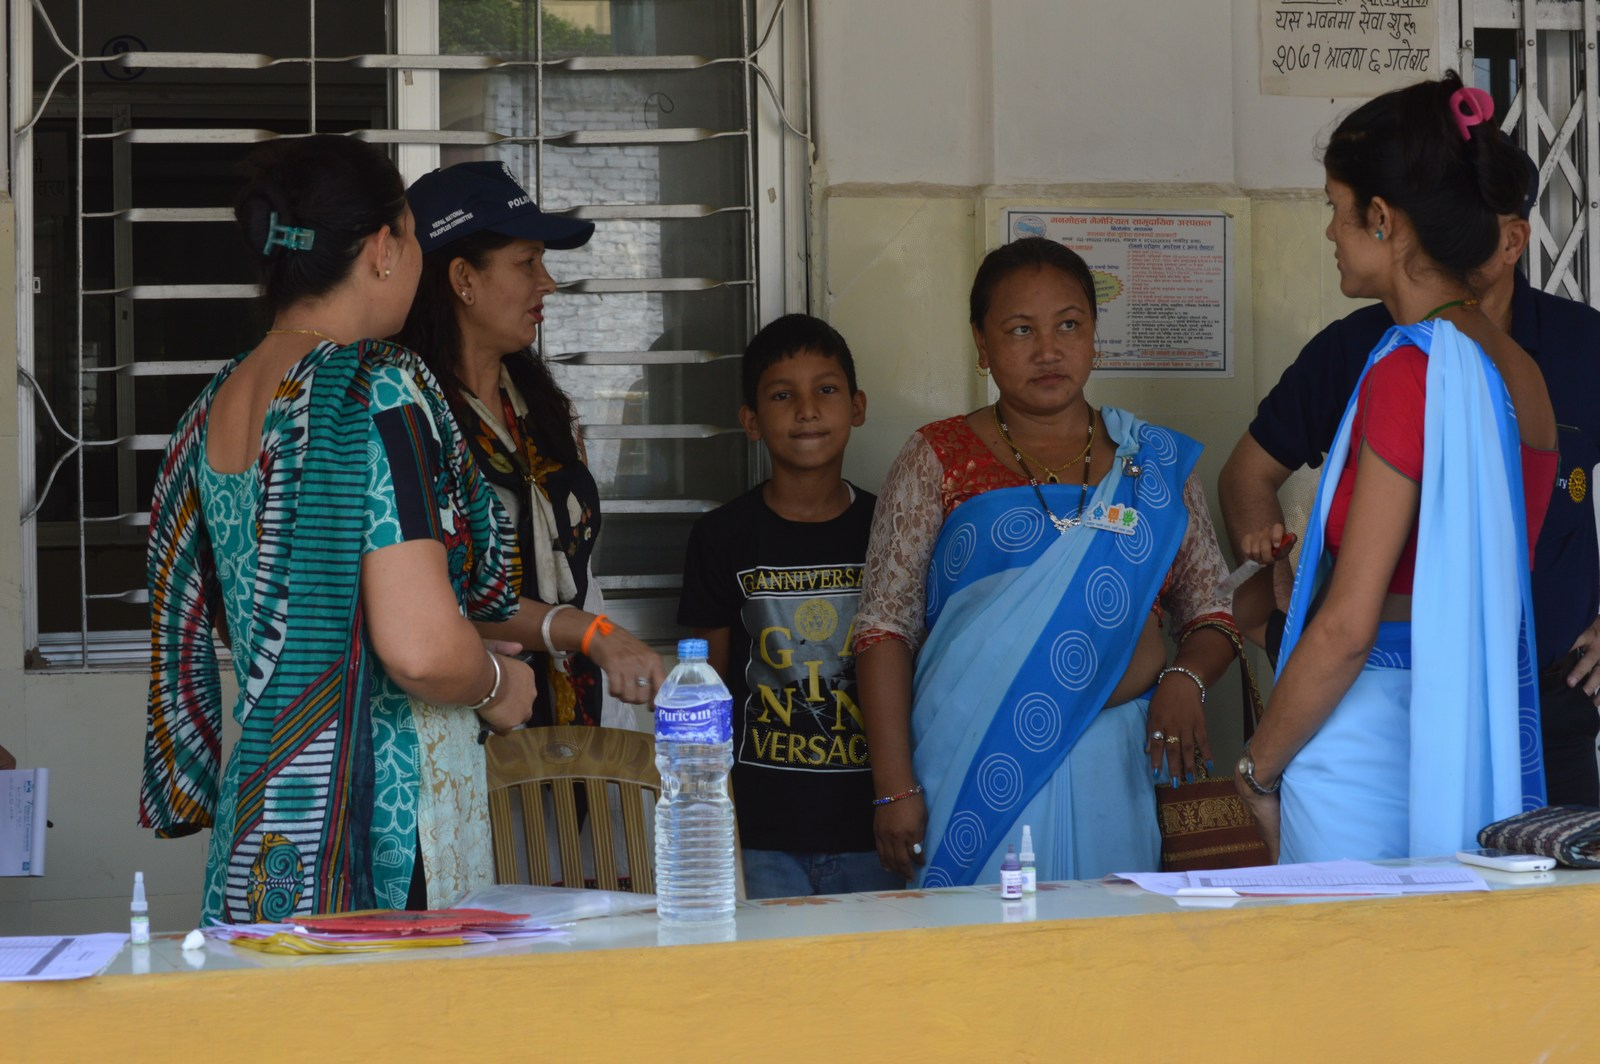 Polio Booth Inspection 1